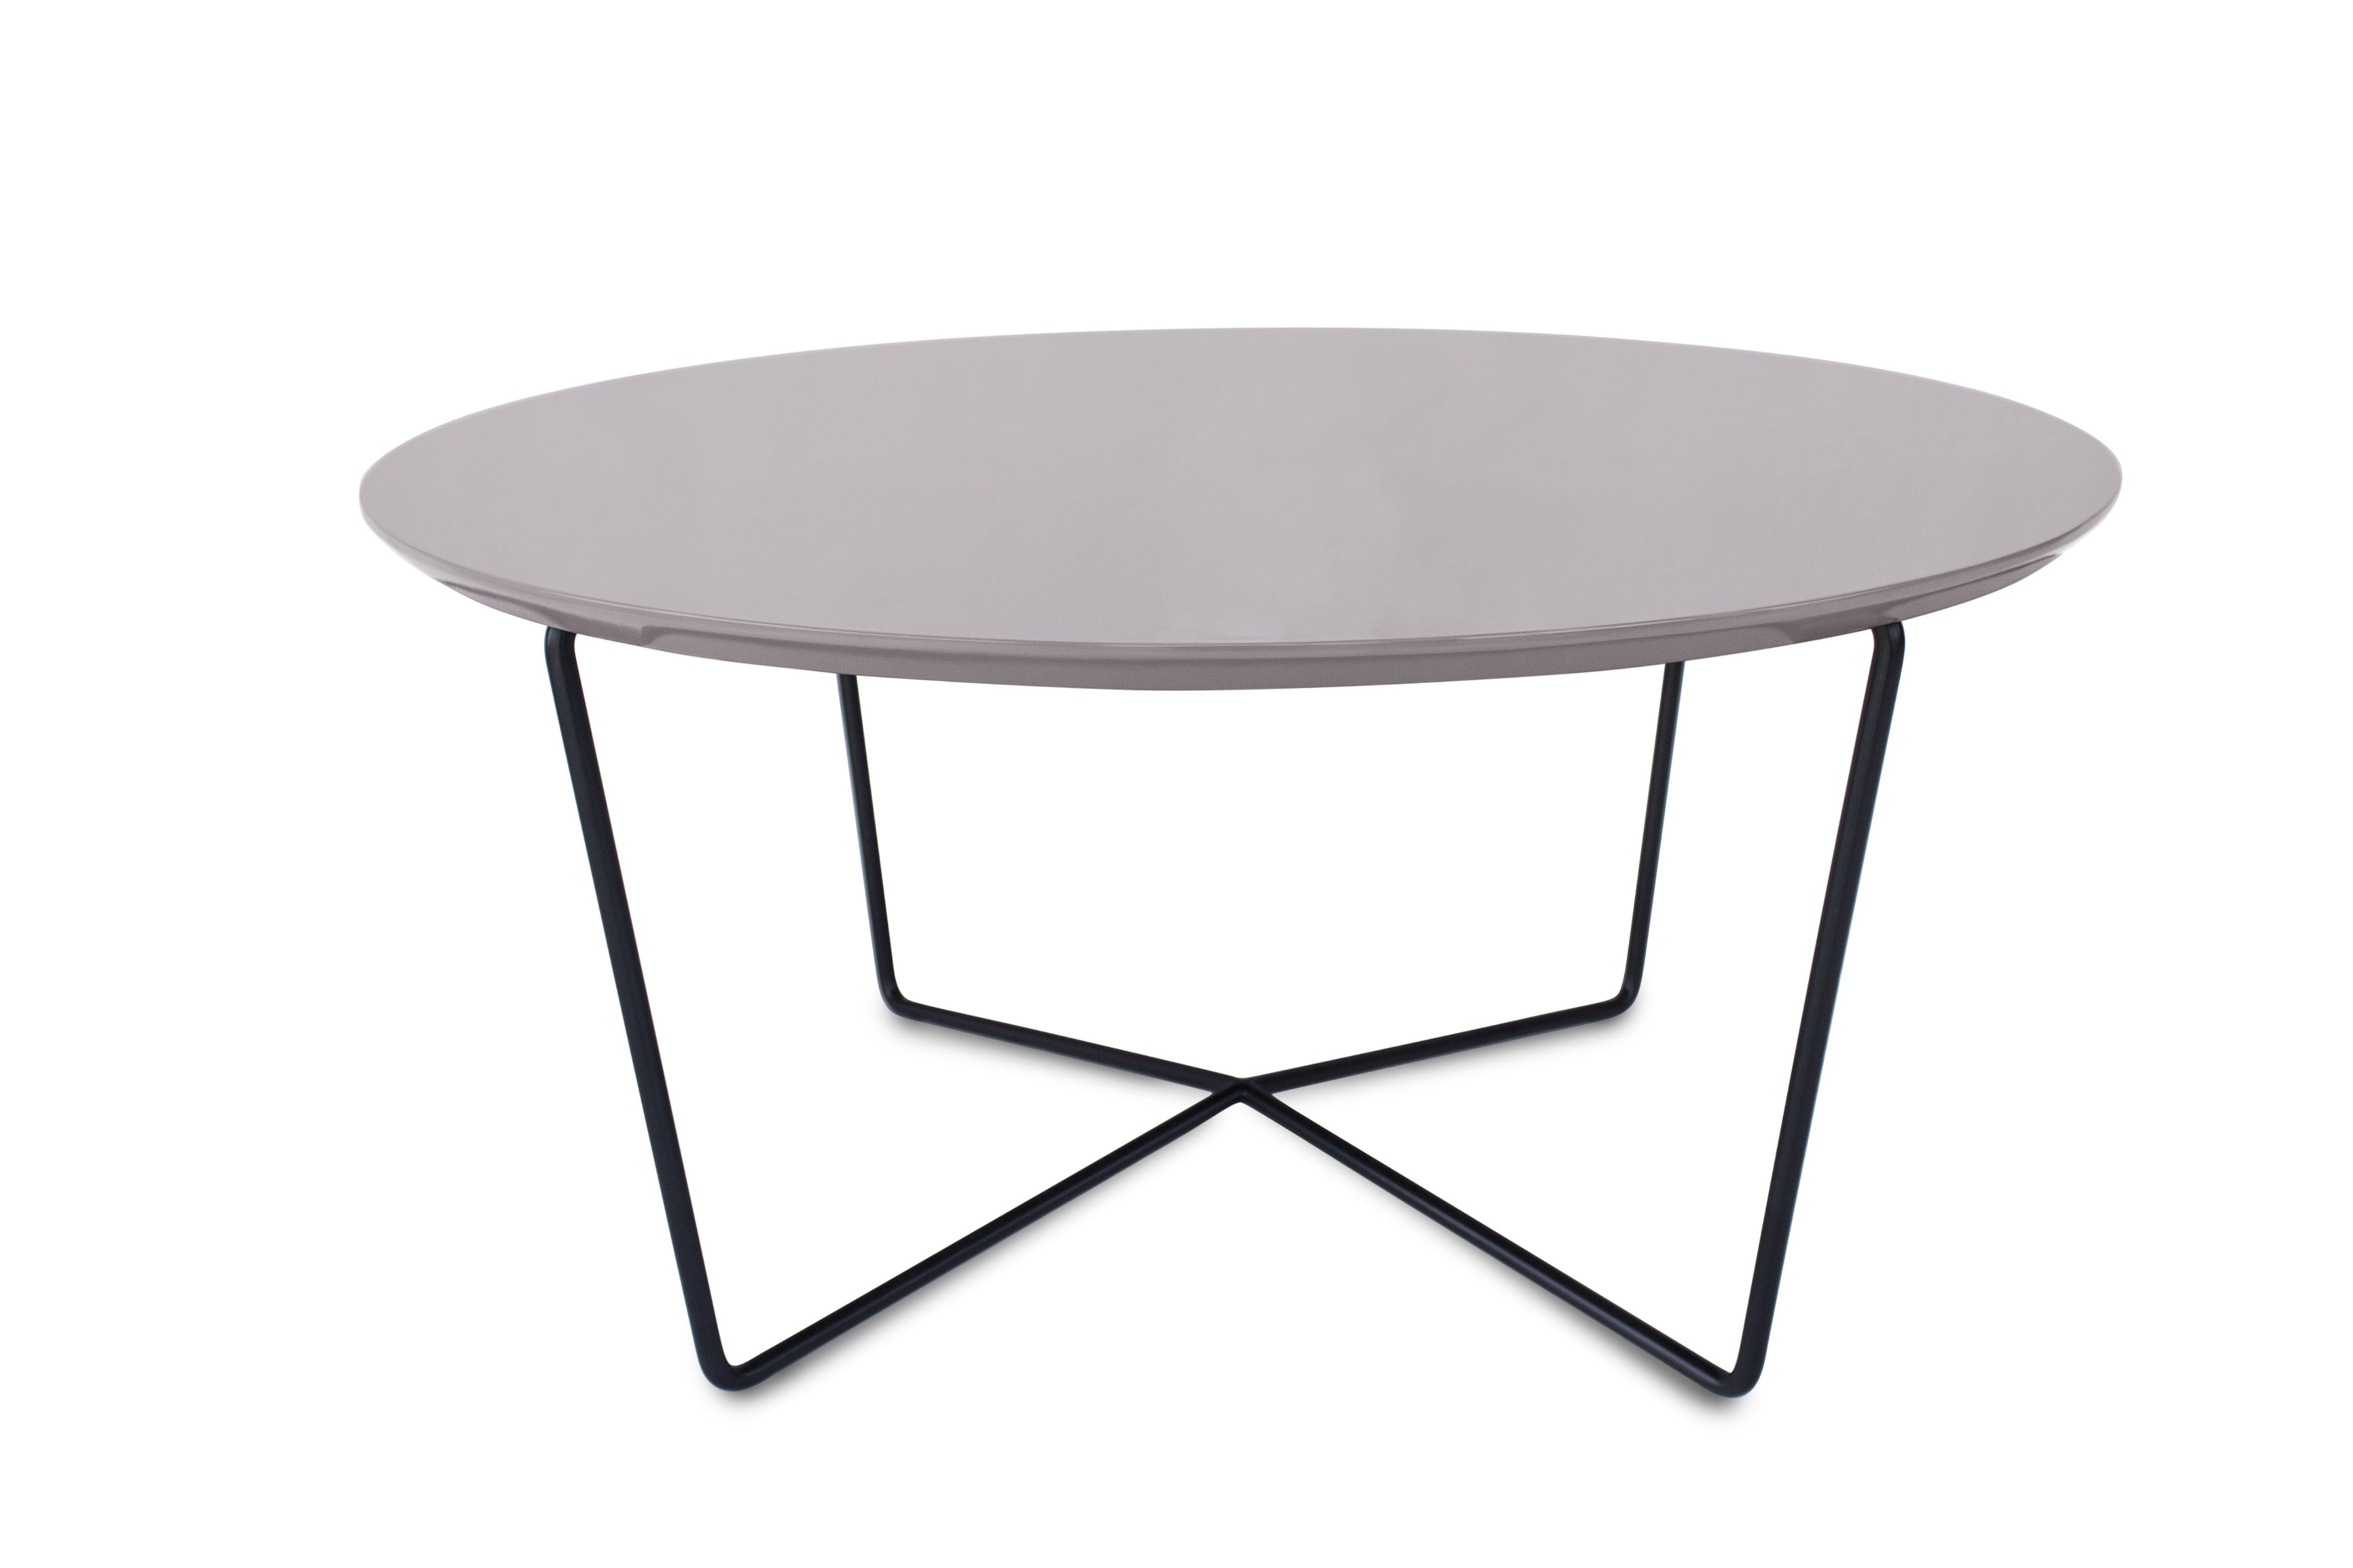 Gemma mdf coffee table gemma collection by altinox minimal for Minimal table design